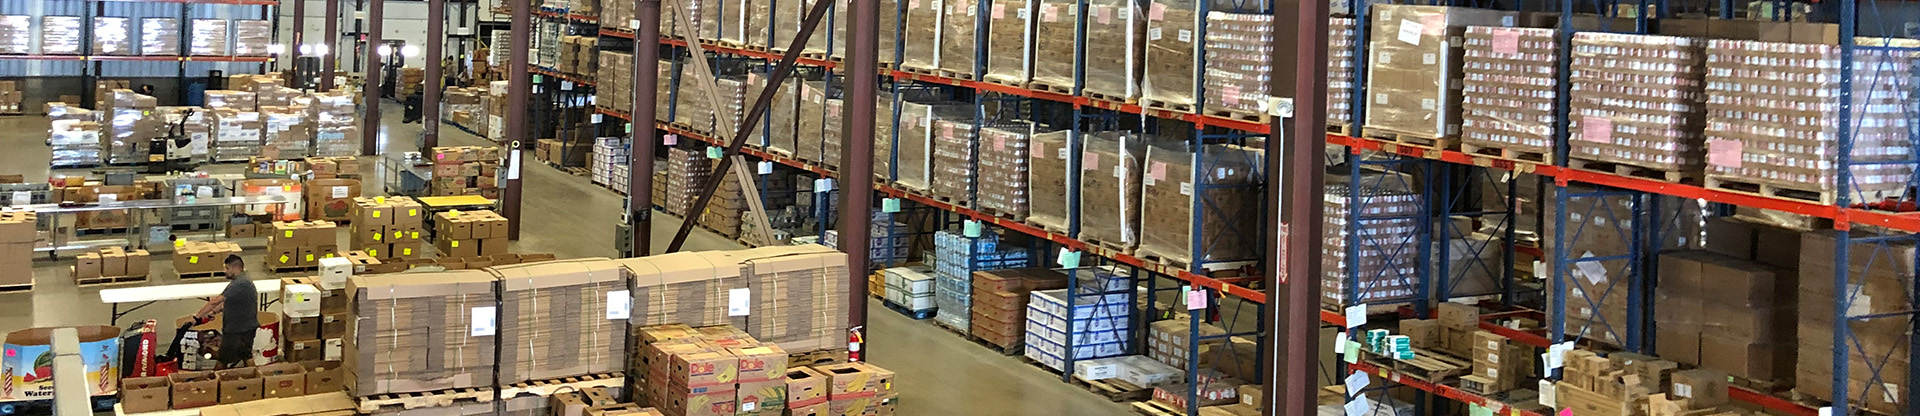 commercial pest control for warehouses